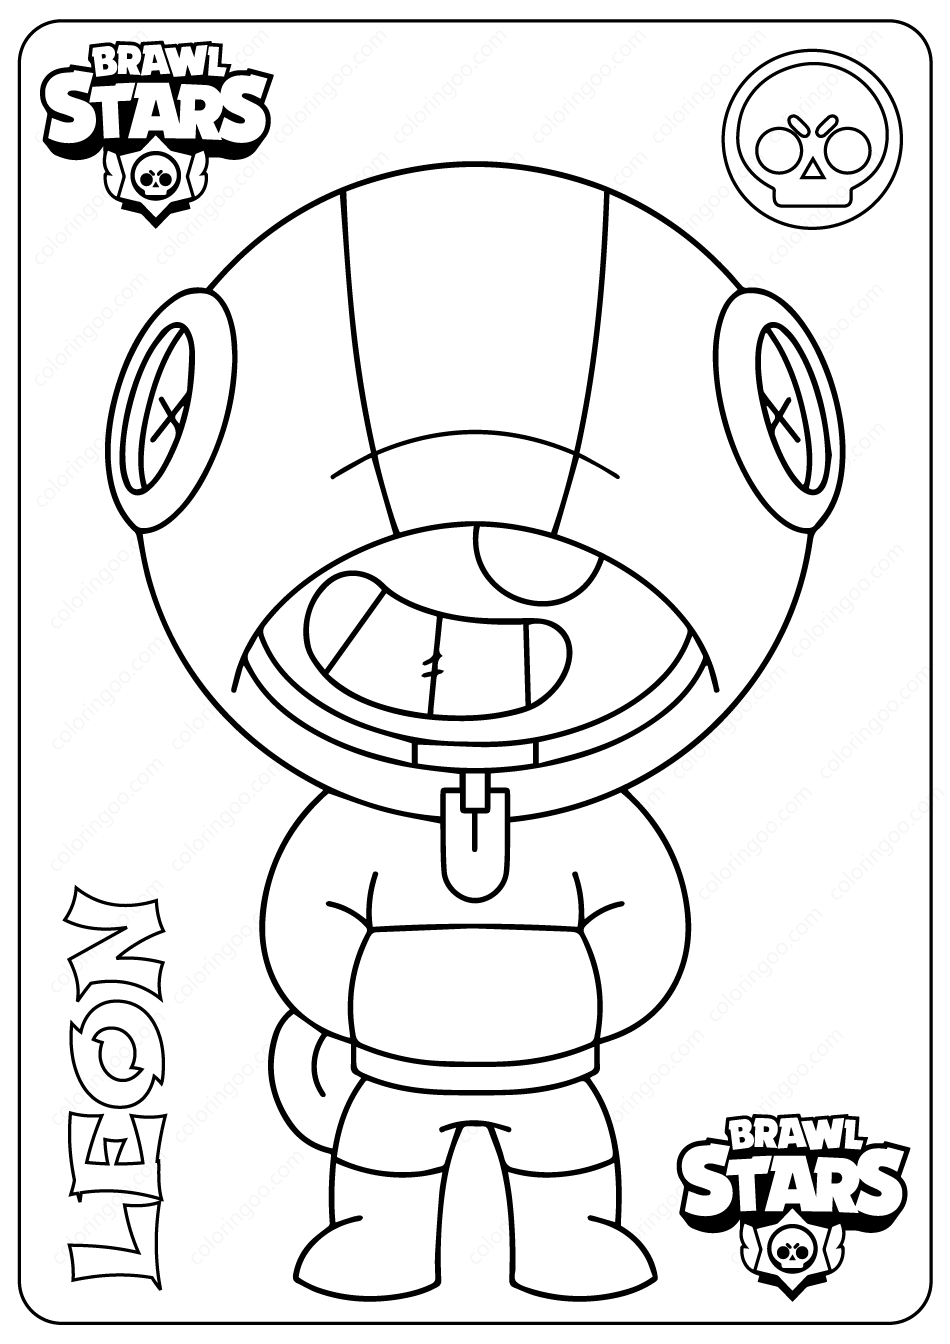 brawl star coloring brawl stars coloring pages print them for free coloring star brawl